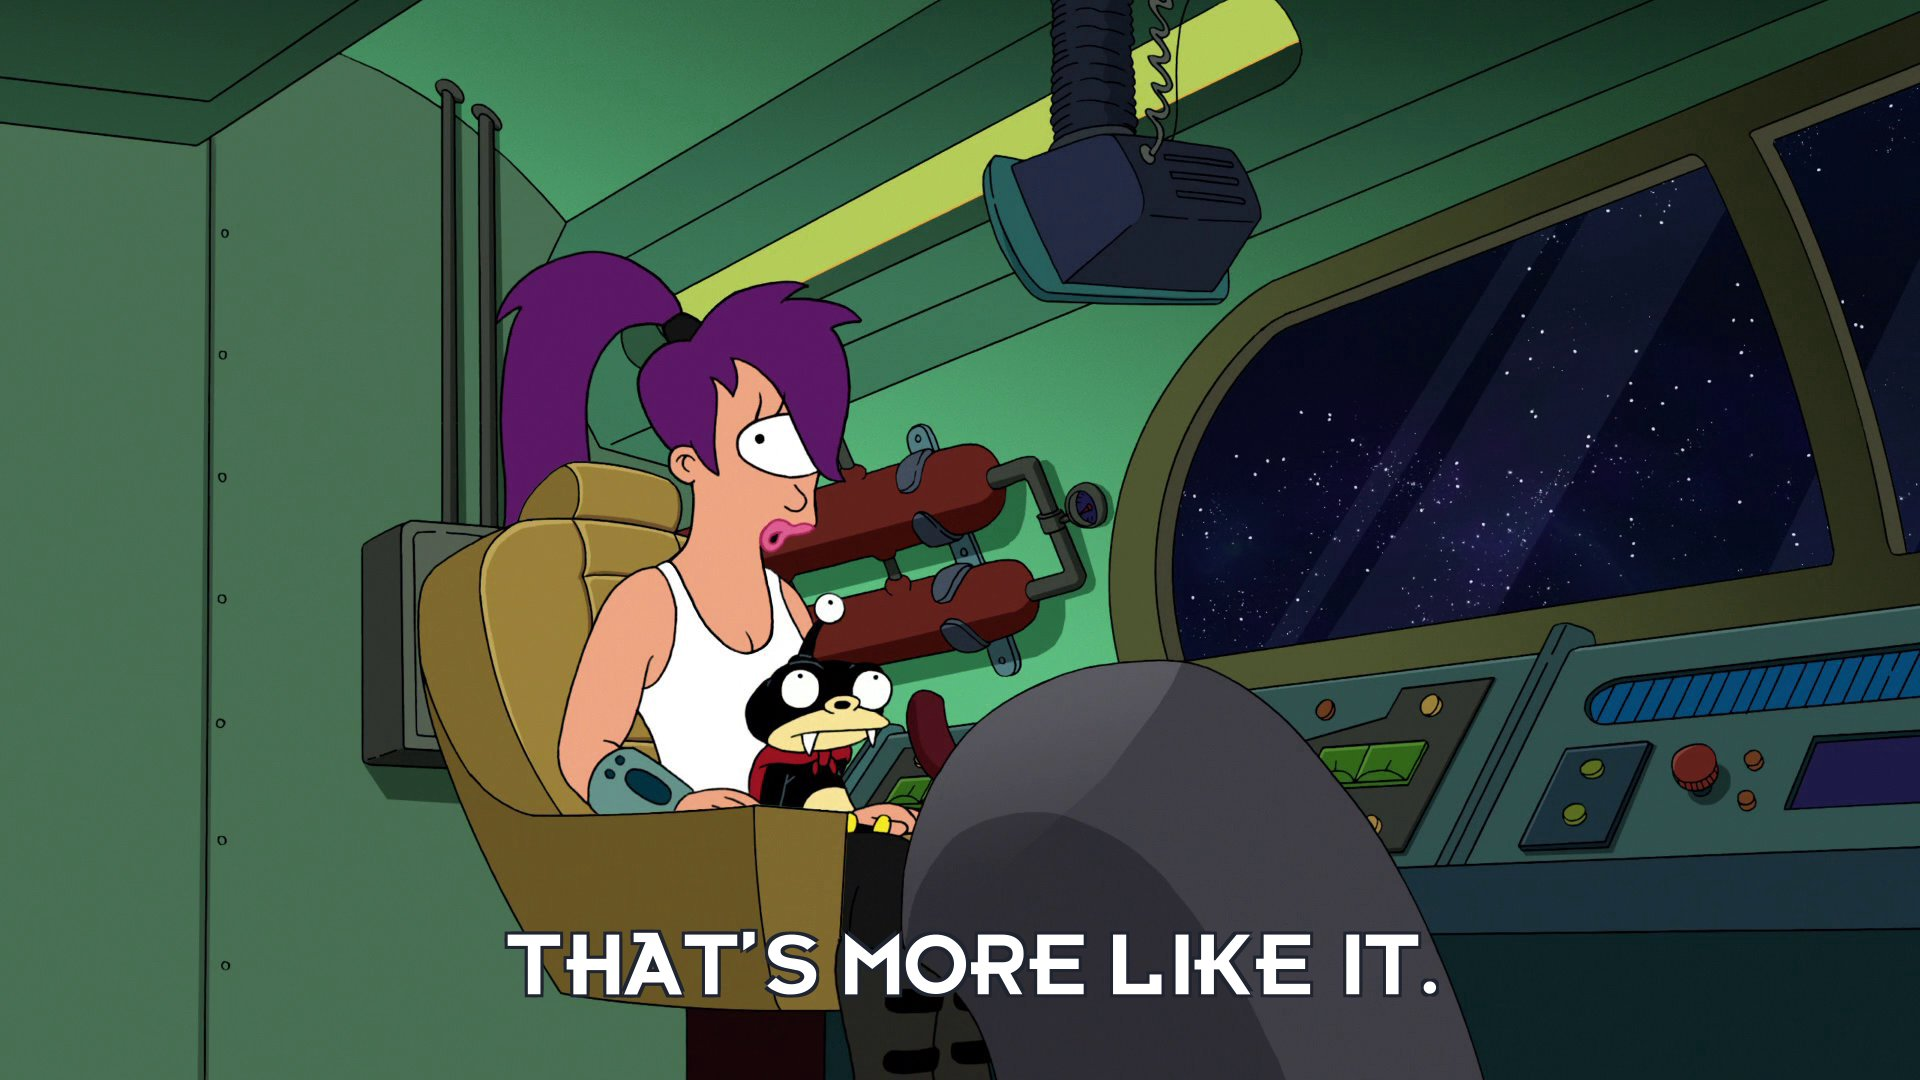 Turanga Leela: That's more like it.